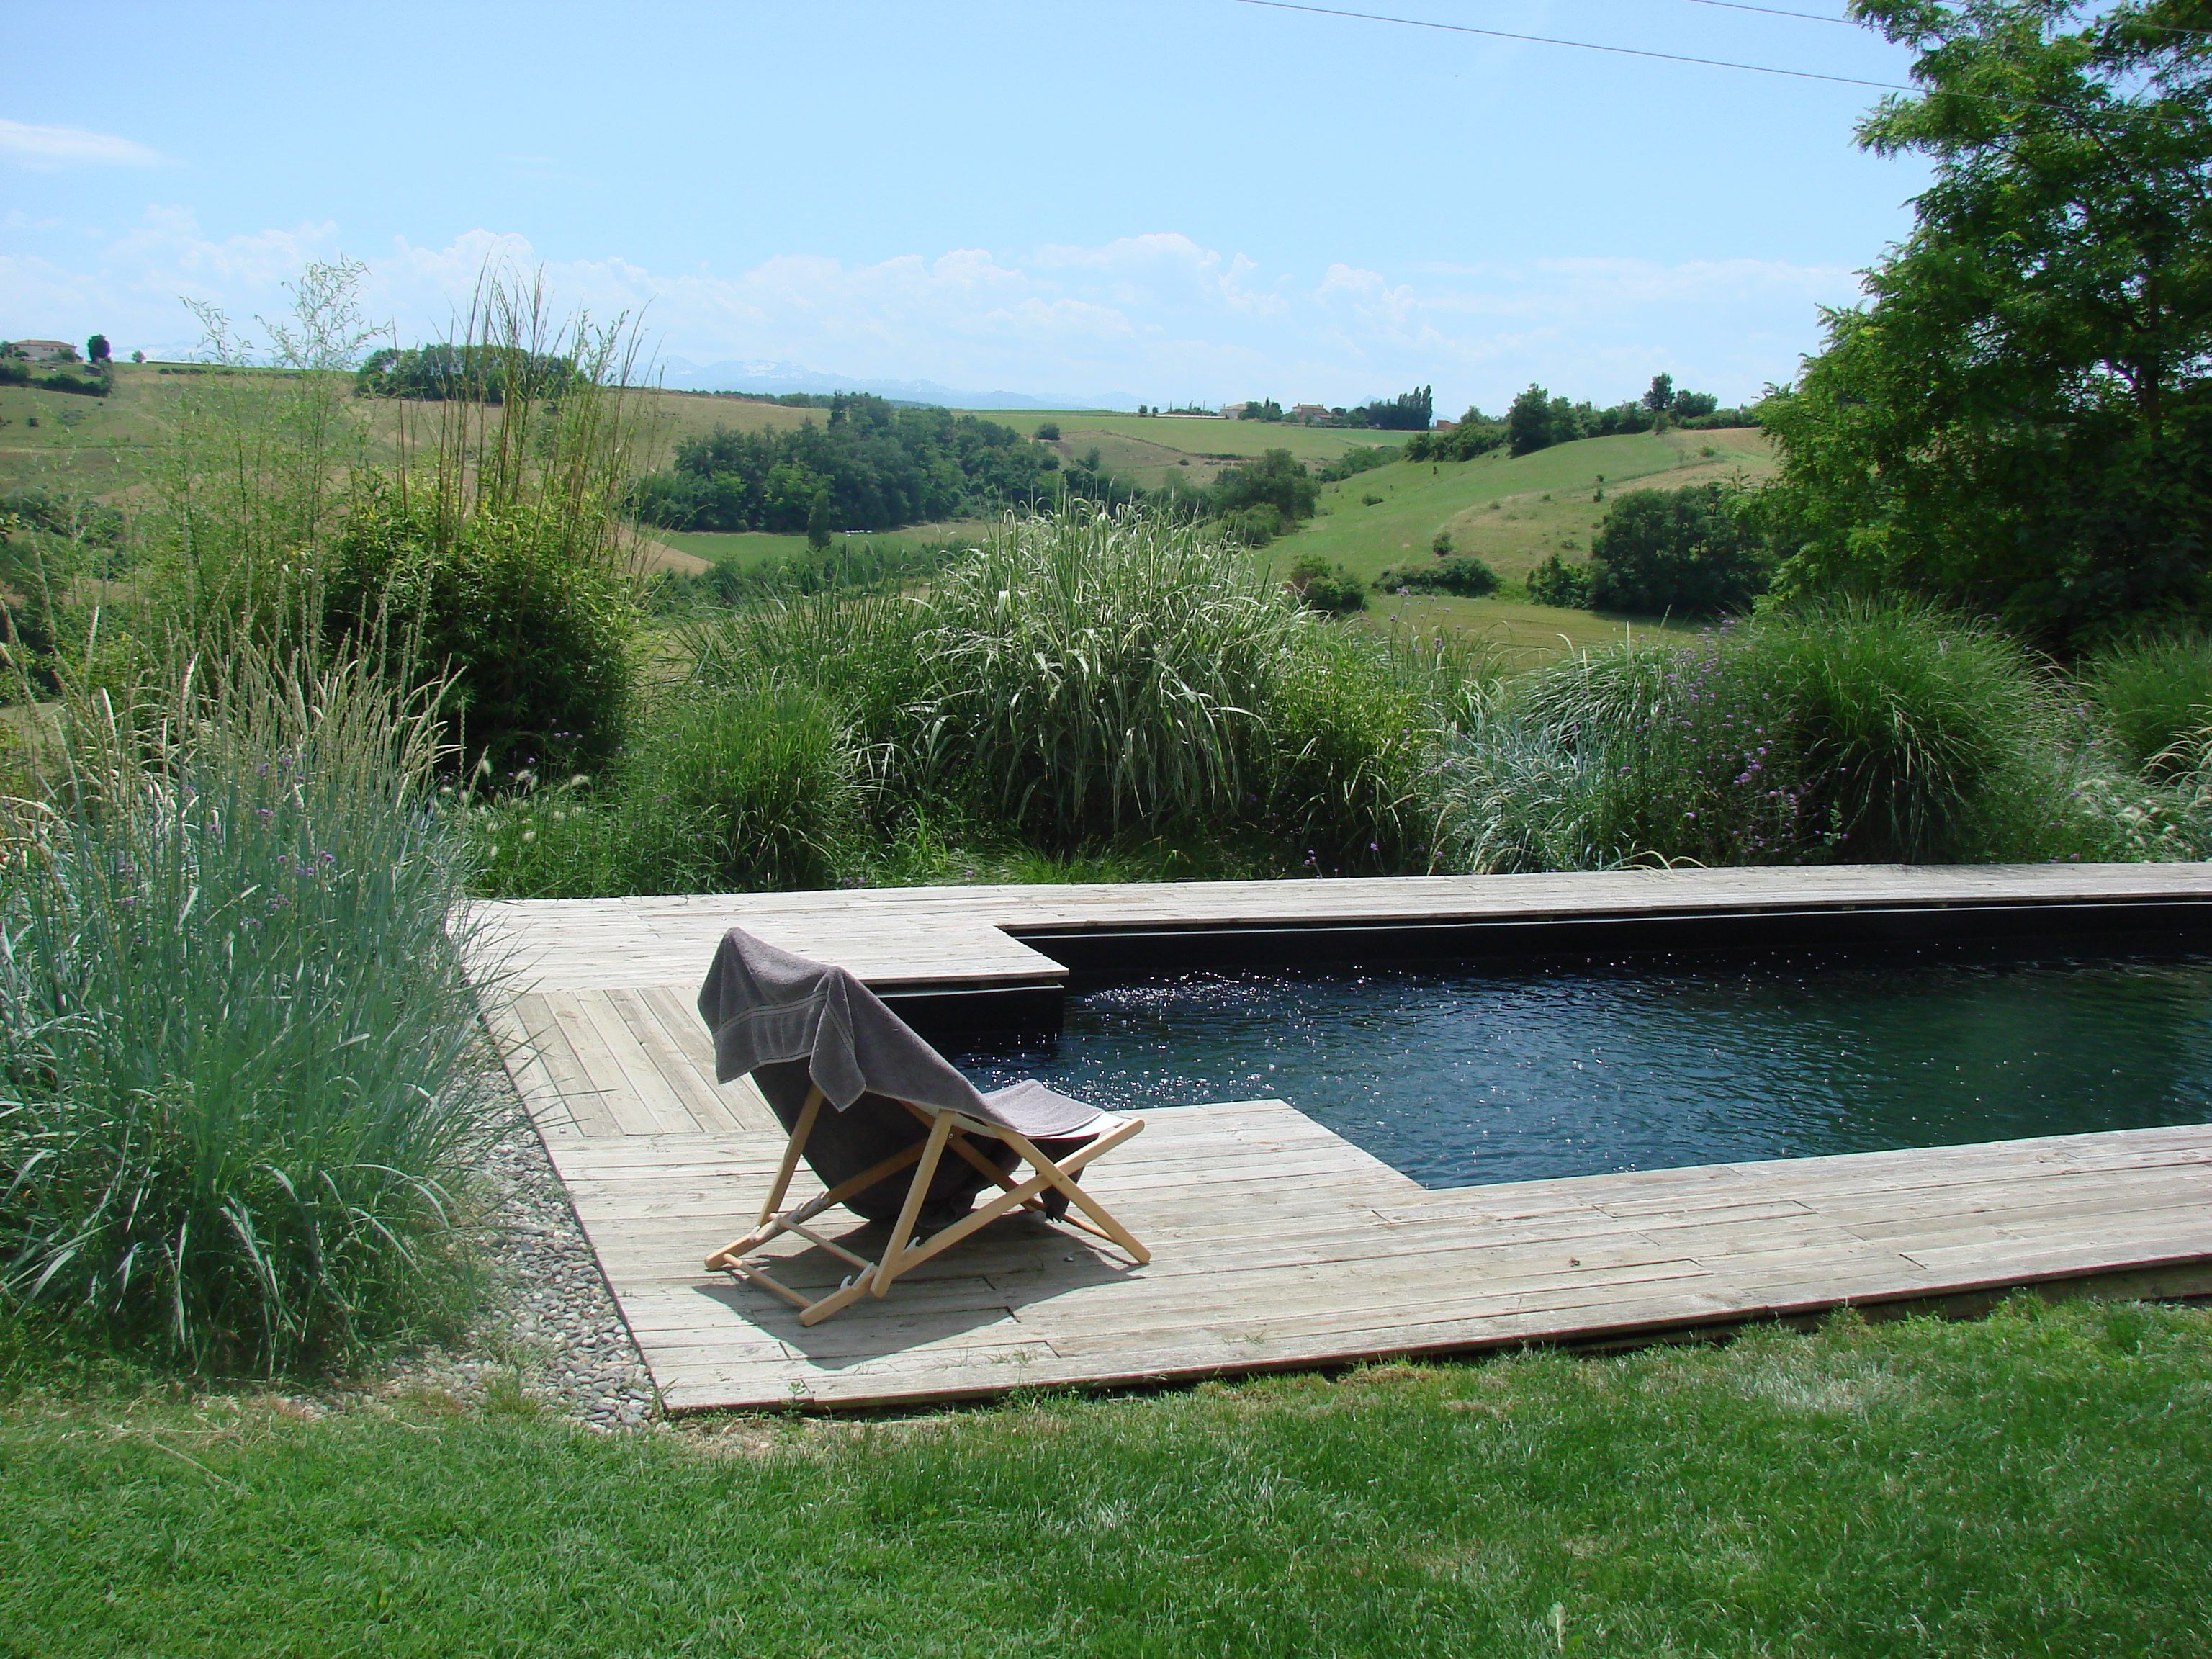 Piscine avec liner noir effet piscine naturelle swimming pool with black liner natural for Piscine liner noir